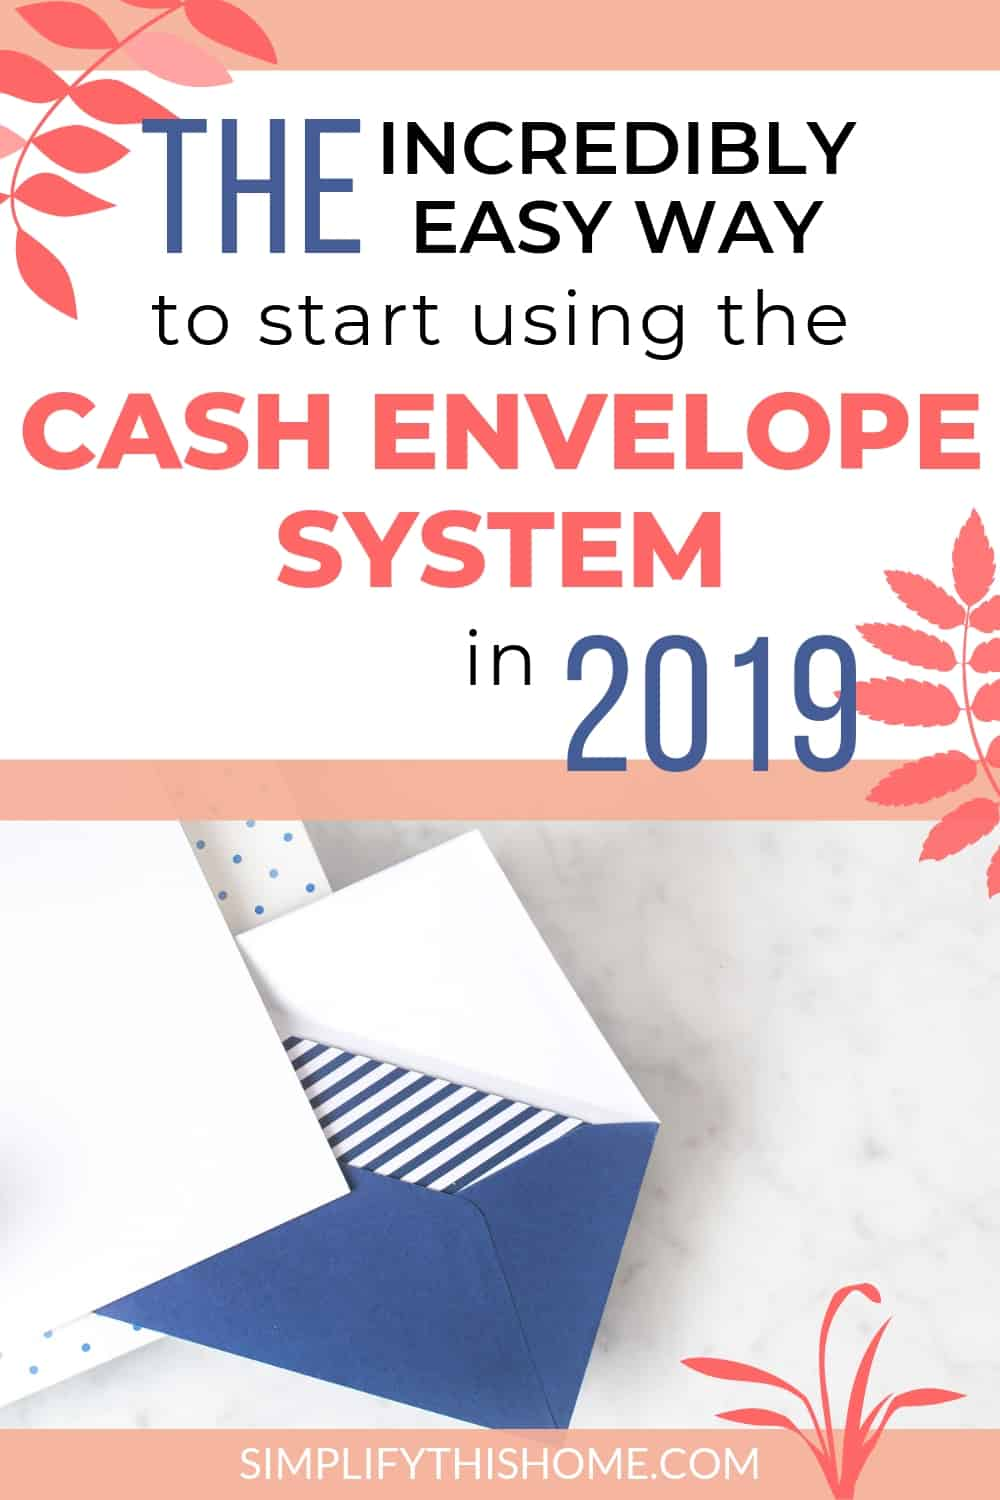 Easy way to use the cash envelope system in 2019